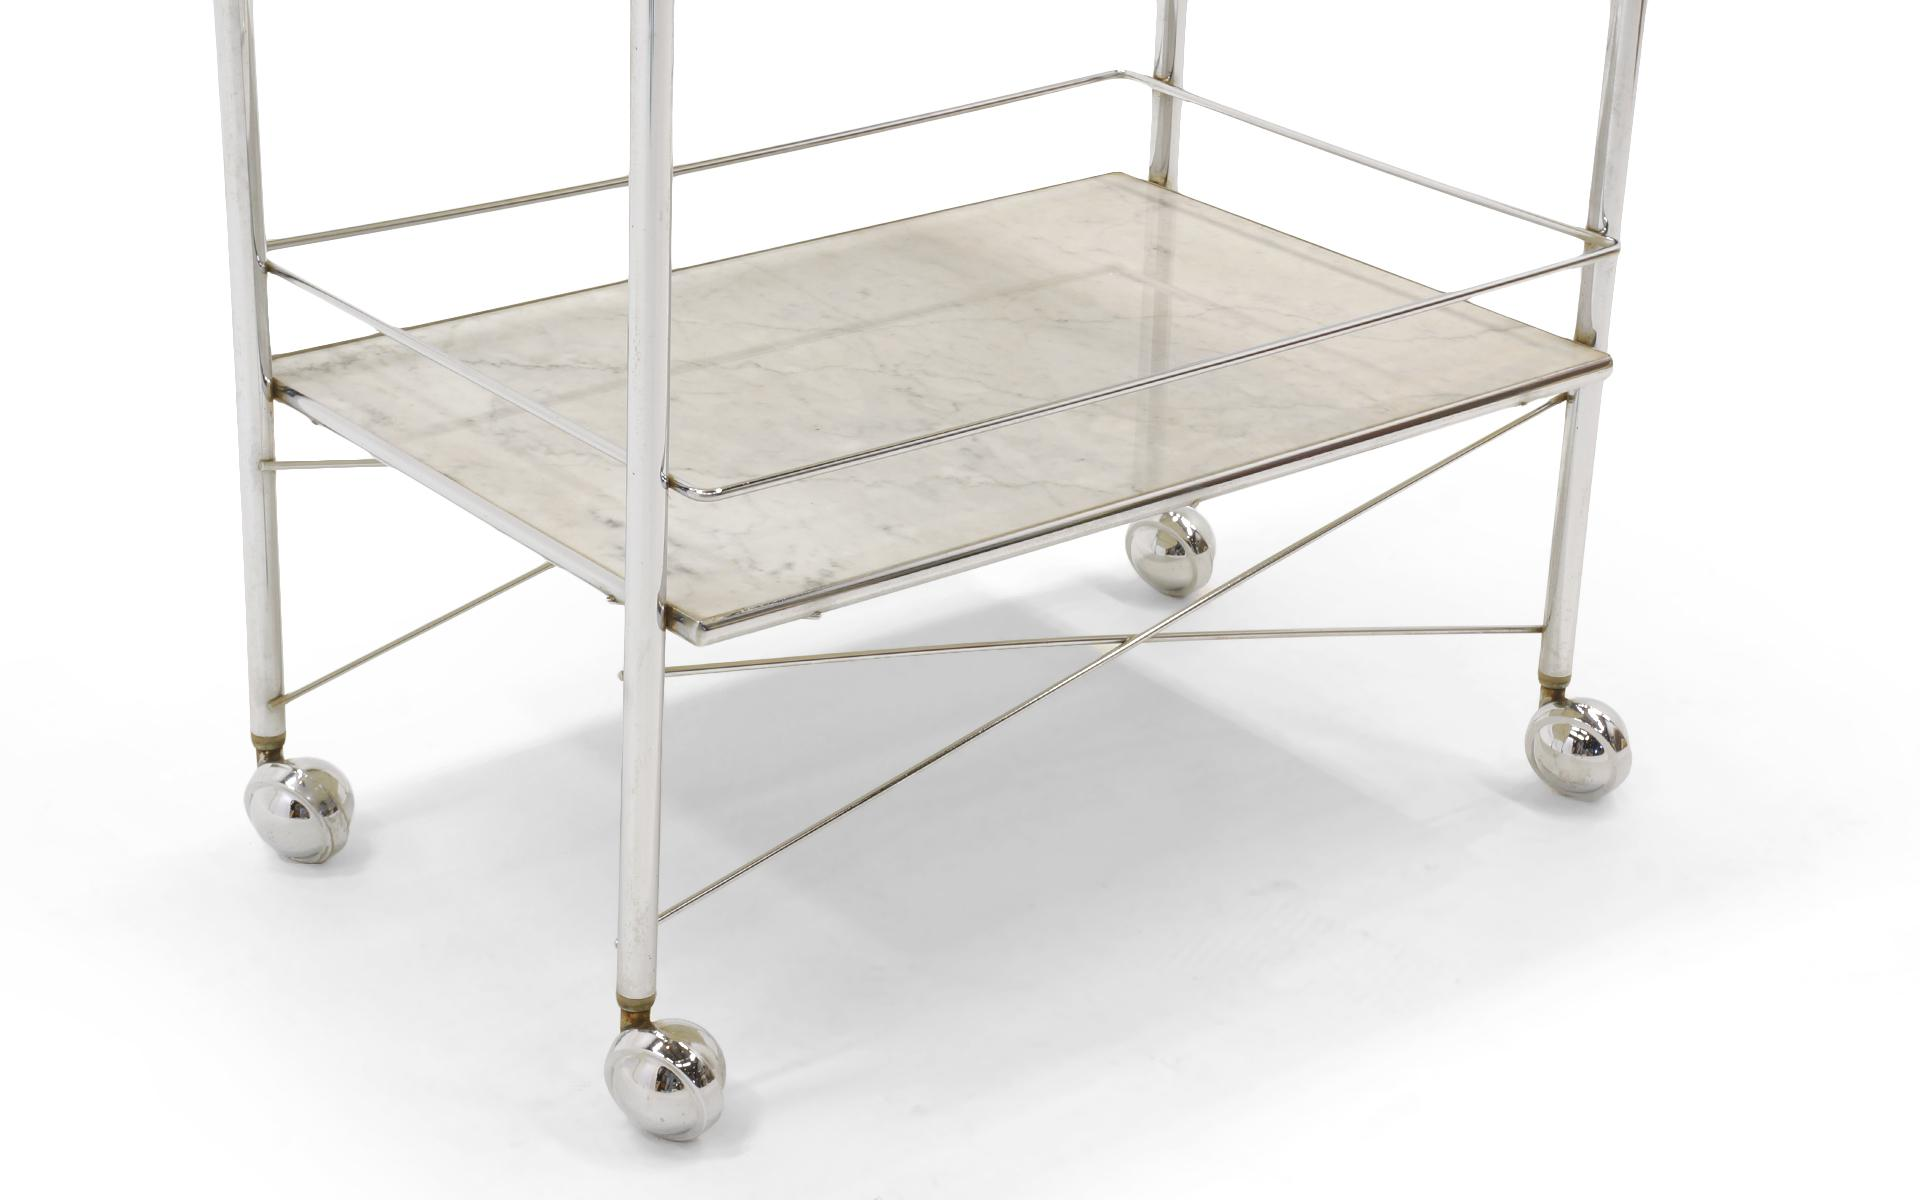 superior 1960s serving or bar cart chrome with white marble shelves rh decaso com shelving on casters for library Metal Shelving